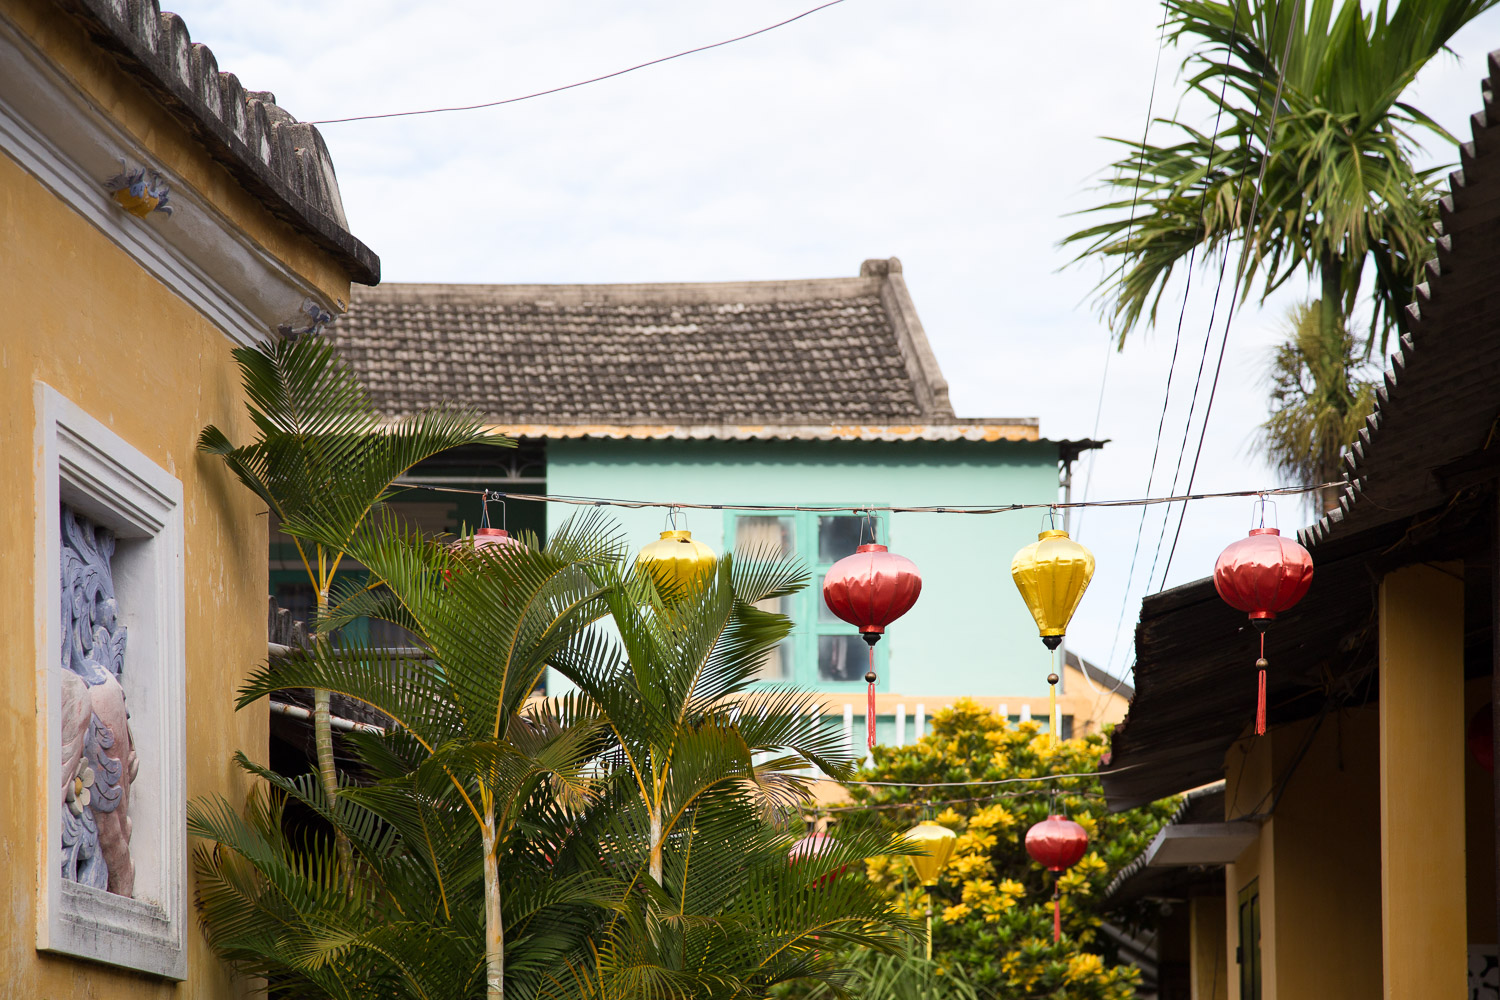 Silk lanterns decorating the streets of Hoi An's Old Town are beautiful by day and even more striking at night.